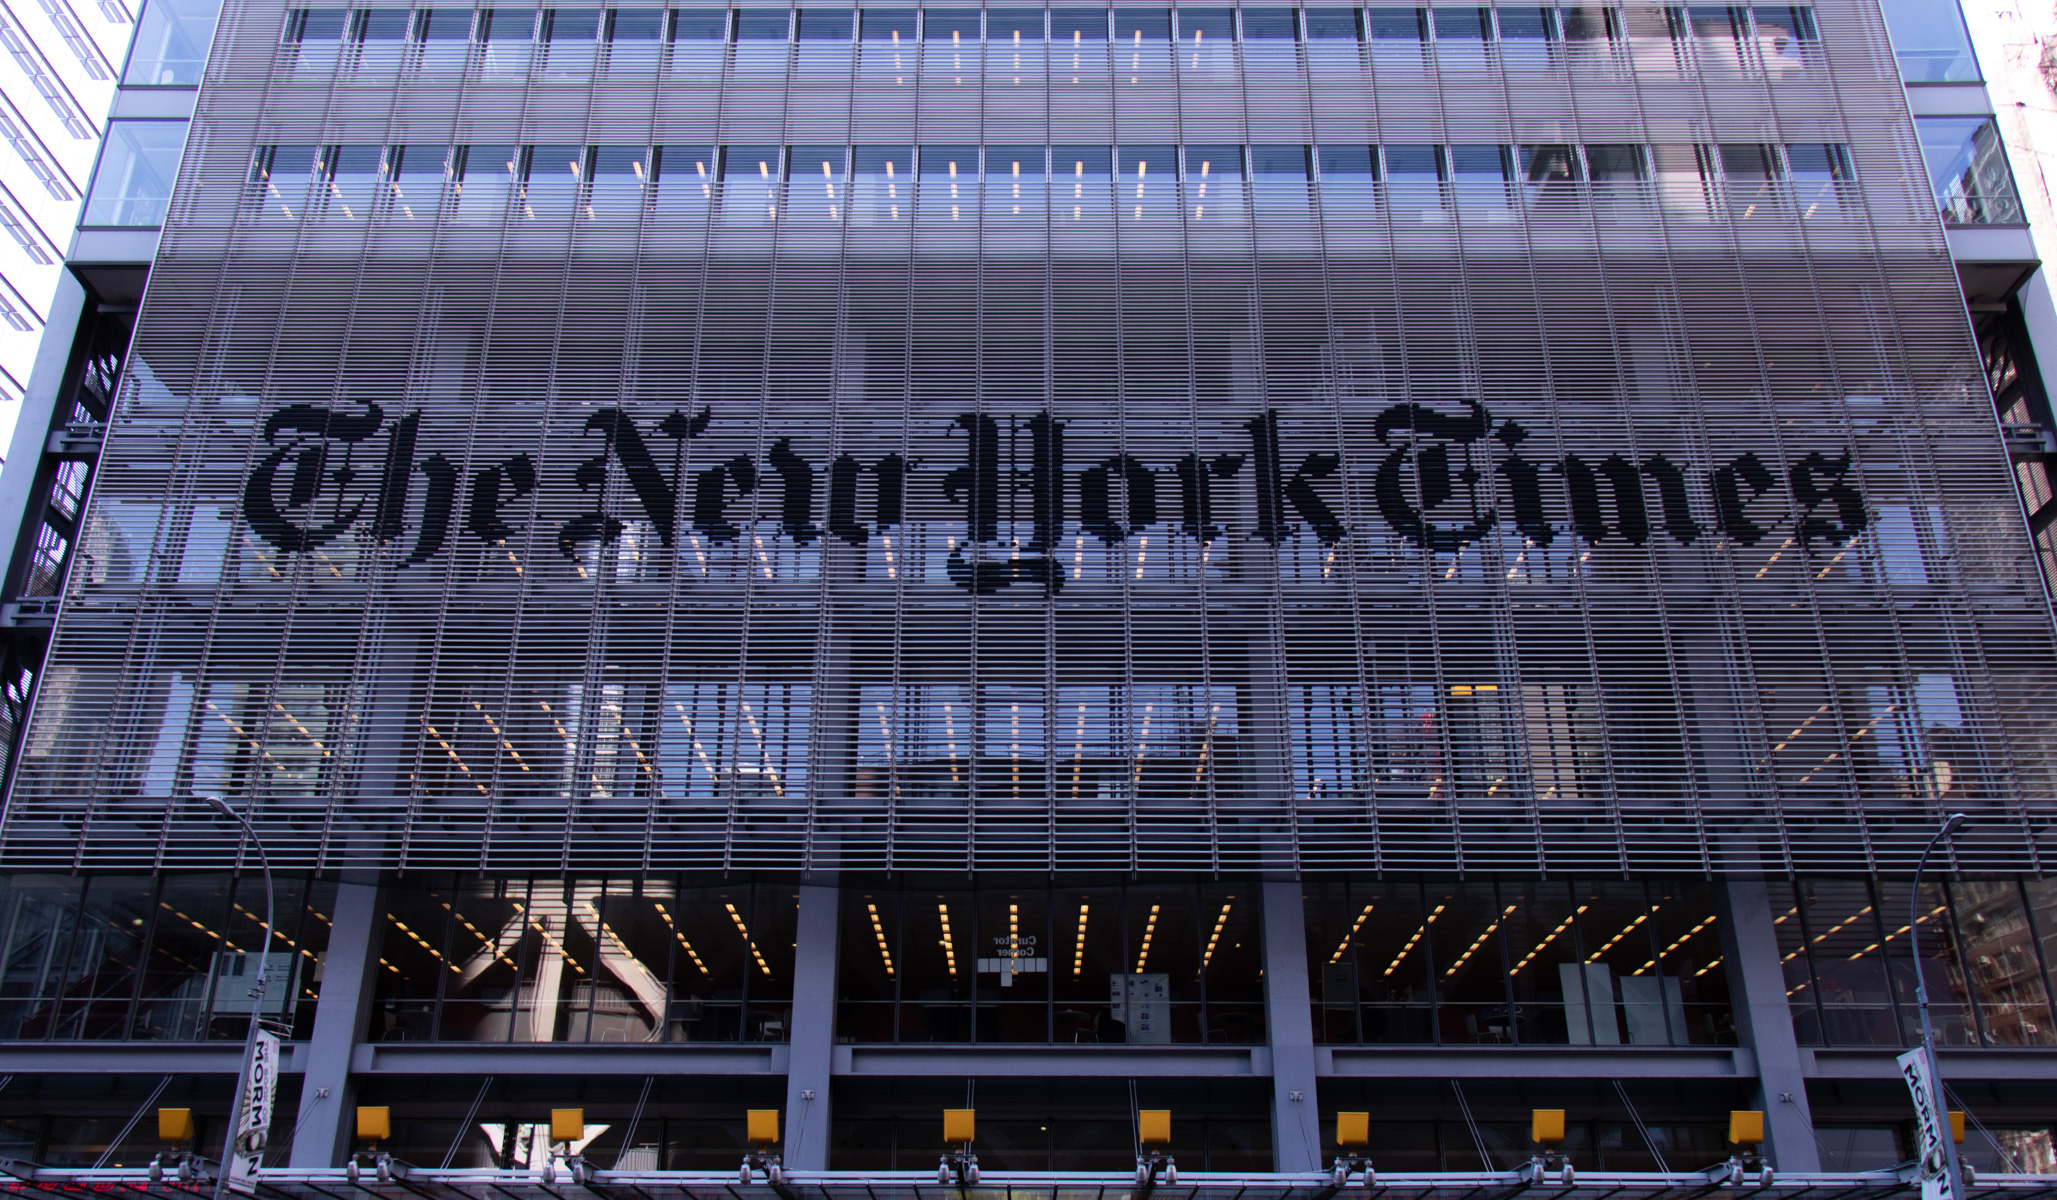 'New York Times' Falsely Labels NYC Gifted Classes 'Racially Segregated'